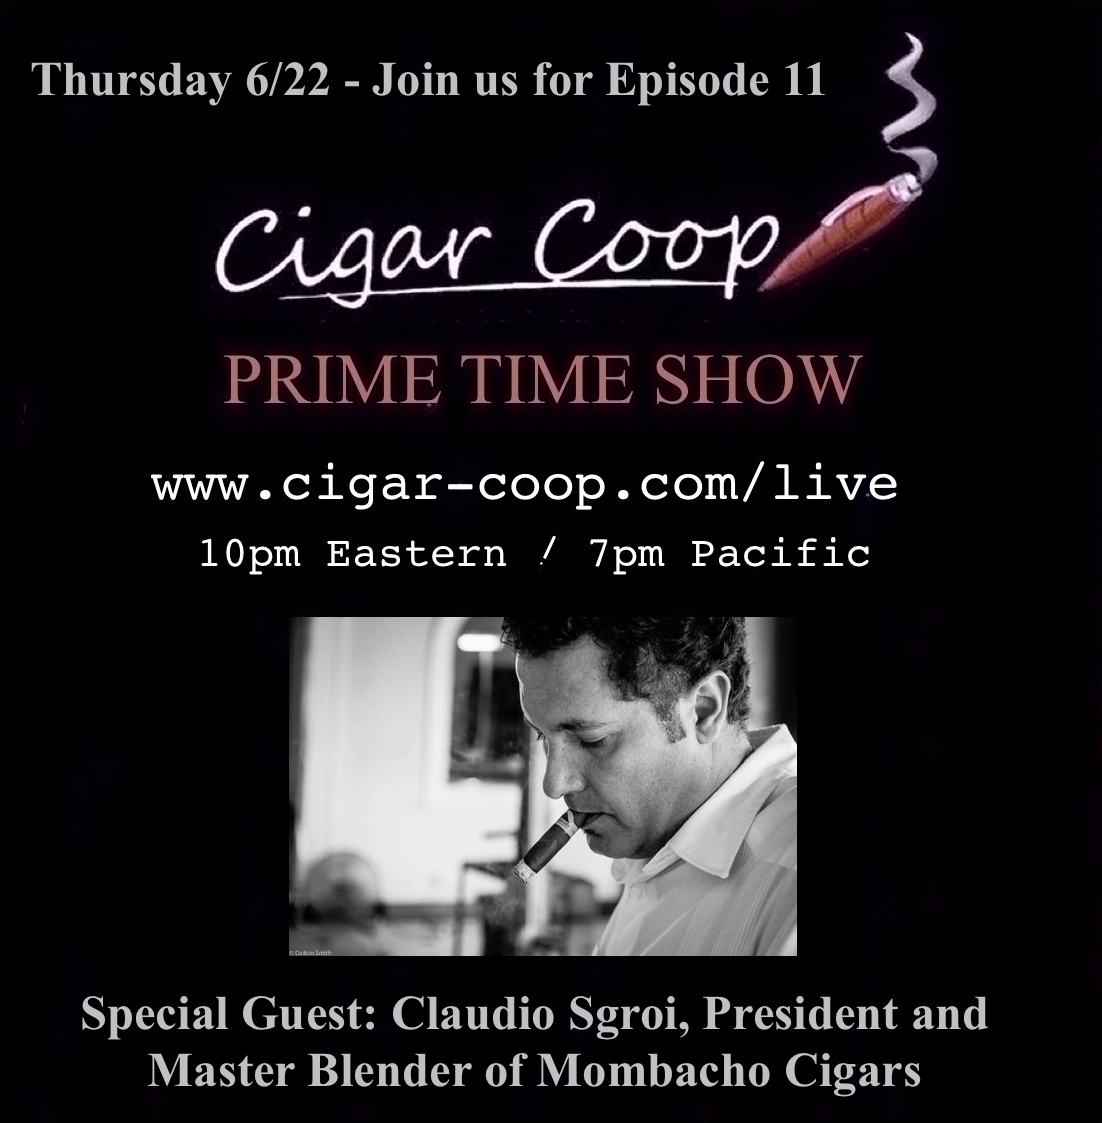 Announcement: Prime Time Show Episode 11: 6/22/17 10pm Eastern, 7pm Pacific